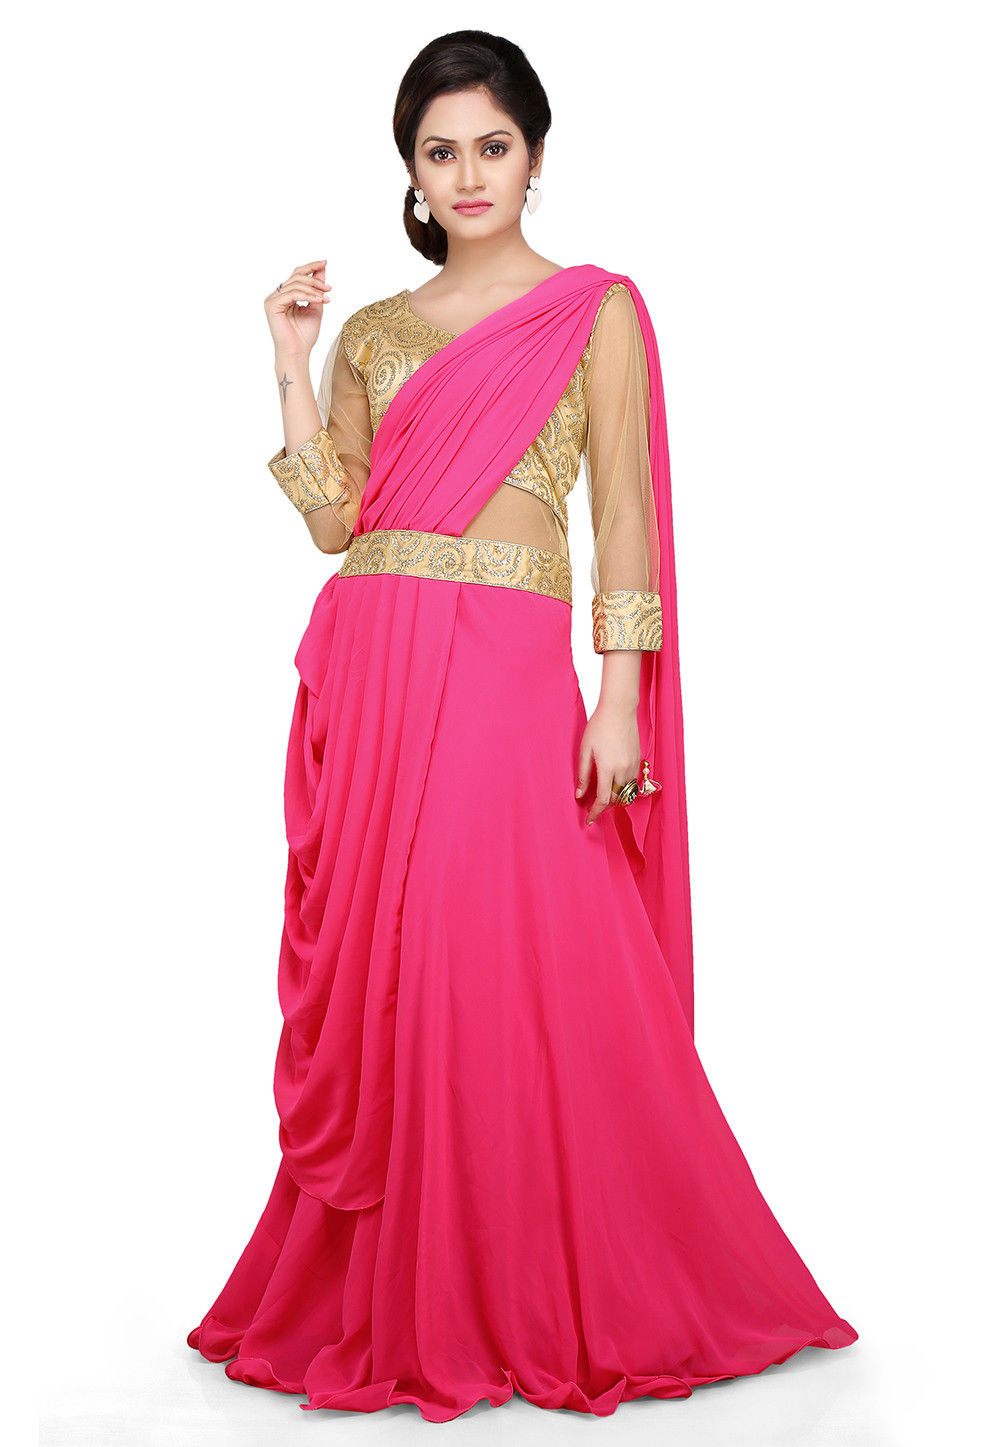 Embroidered georgette pleated saree style gown in pink tjw286 Style me pink fashion show